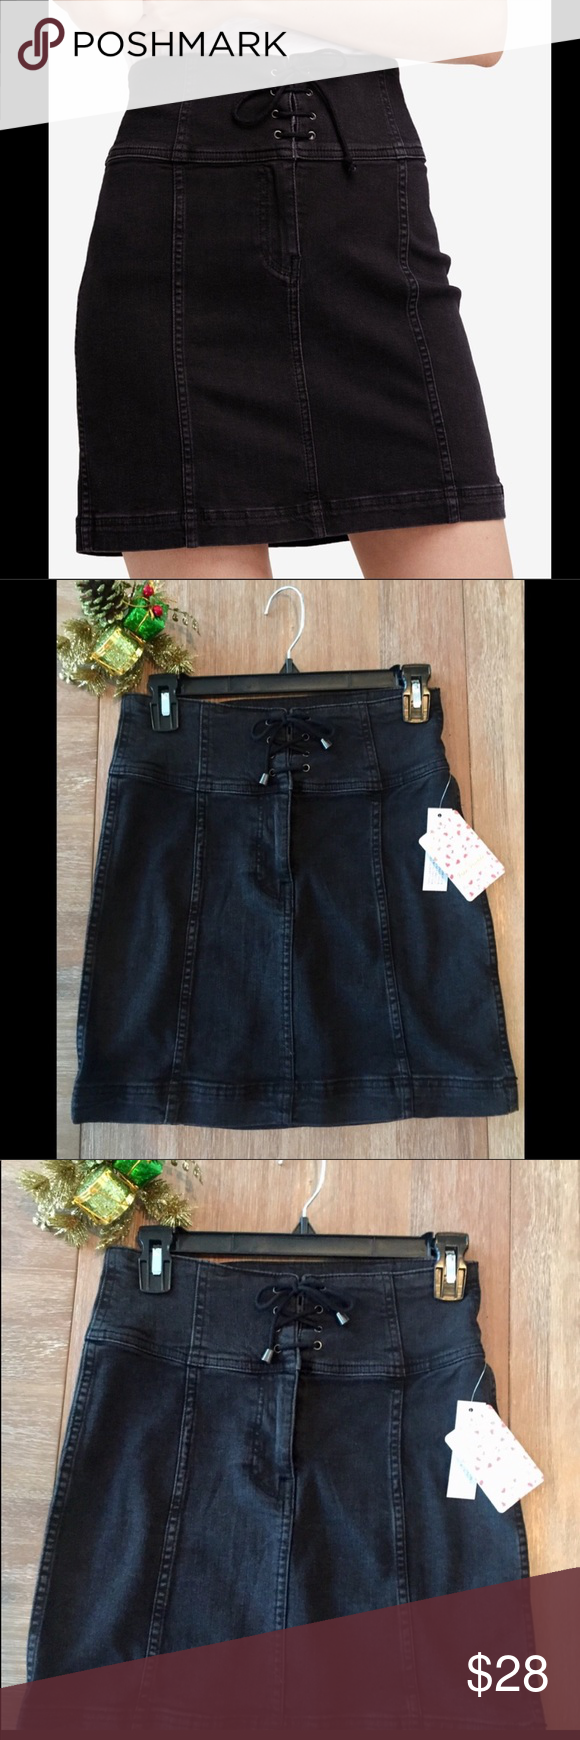 55f317a6b9 Free People Modern Femme Corset Mini Skirt Free People Modern Femme black  denim miniskirt. Give your mini a fresh update with this modern twist.